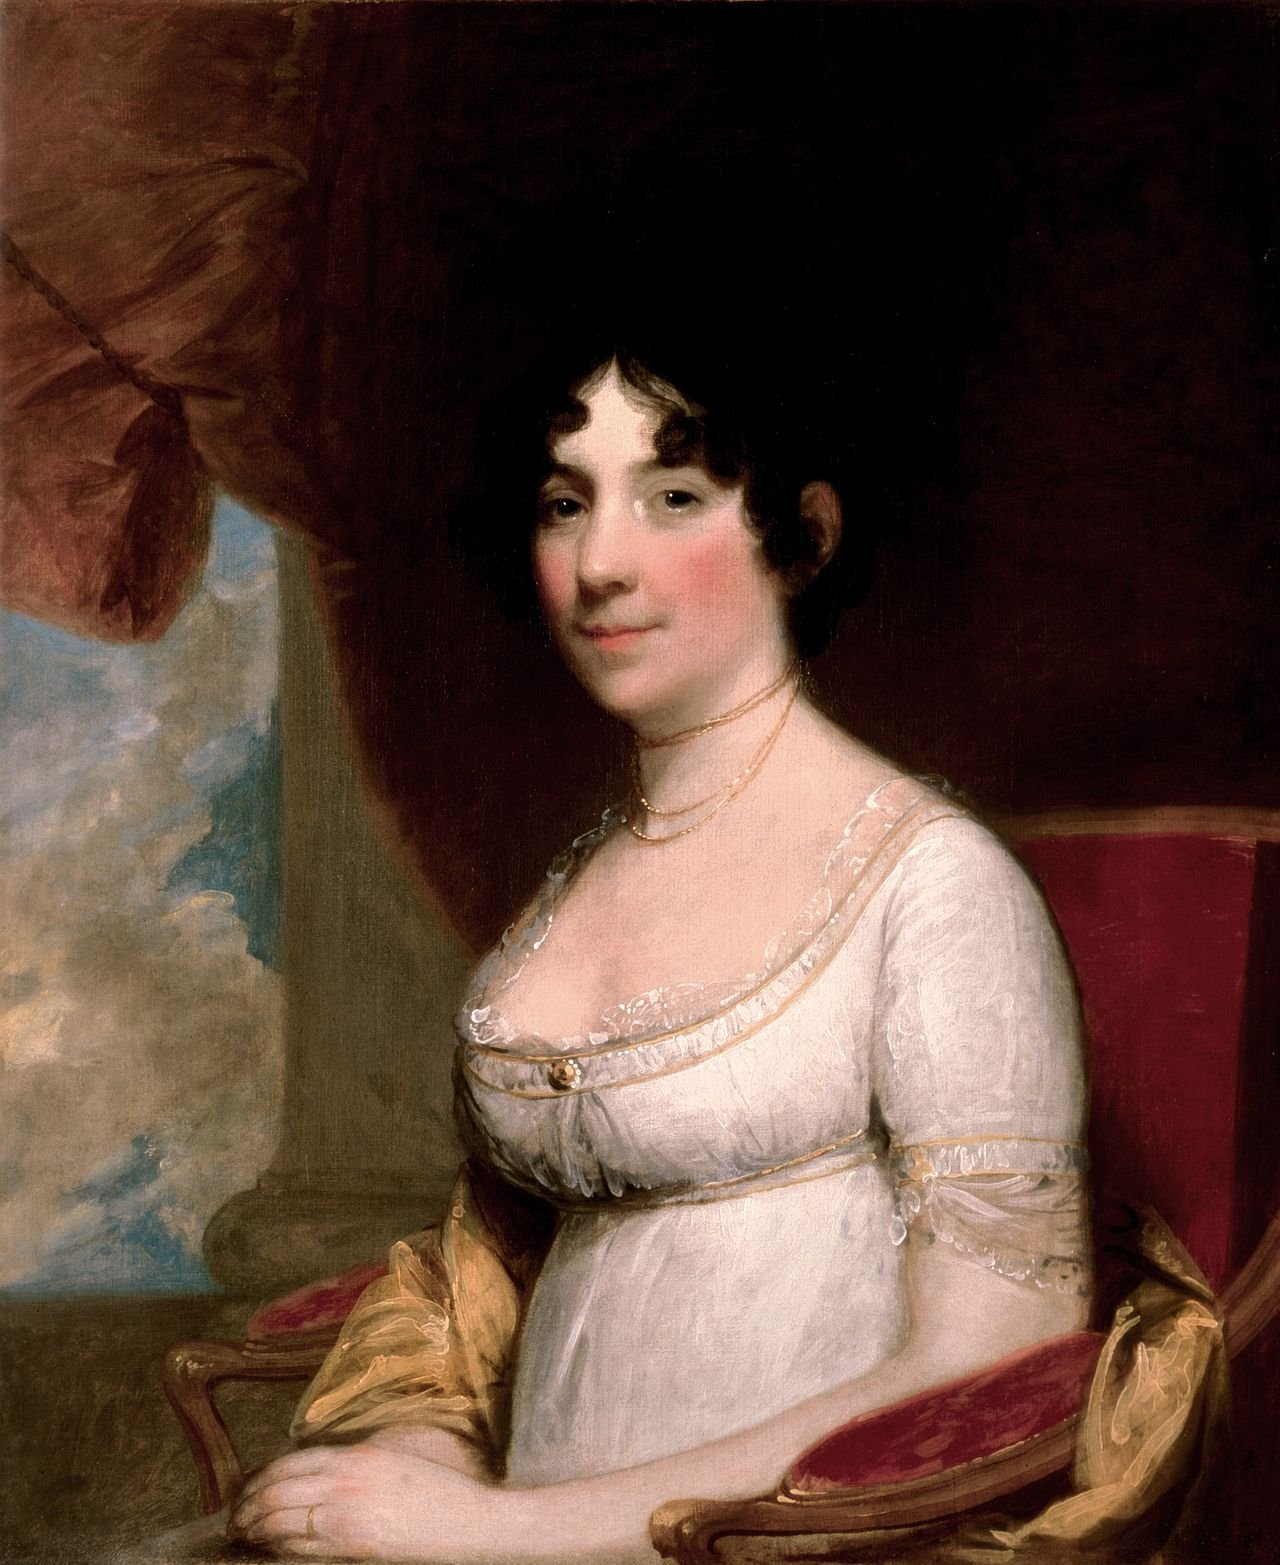 Dolley Madison was the fourth First Lady of the United States, an approachable, social, and elegant figure beloved by the public. Wikimedia Commons.